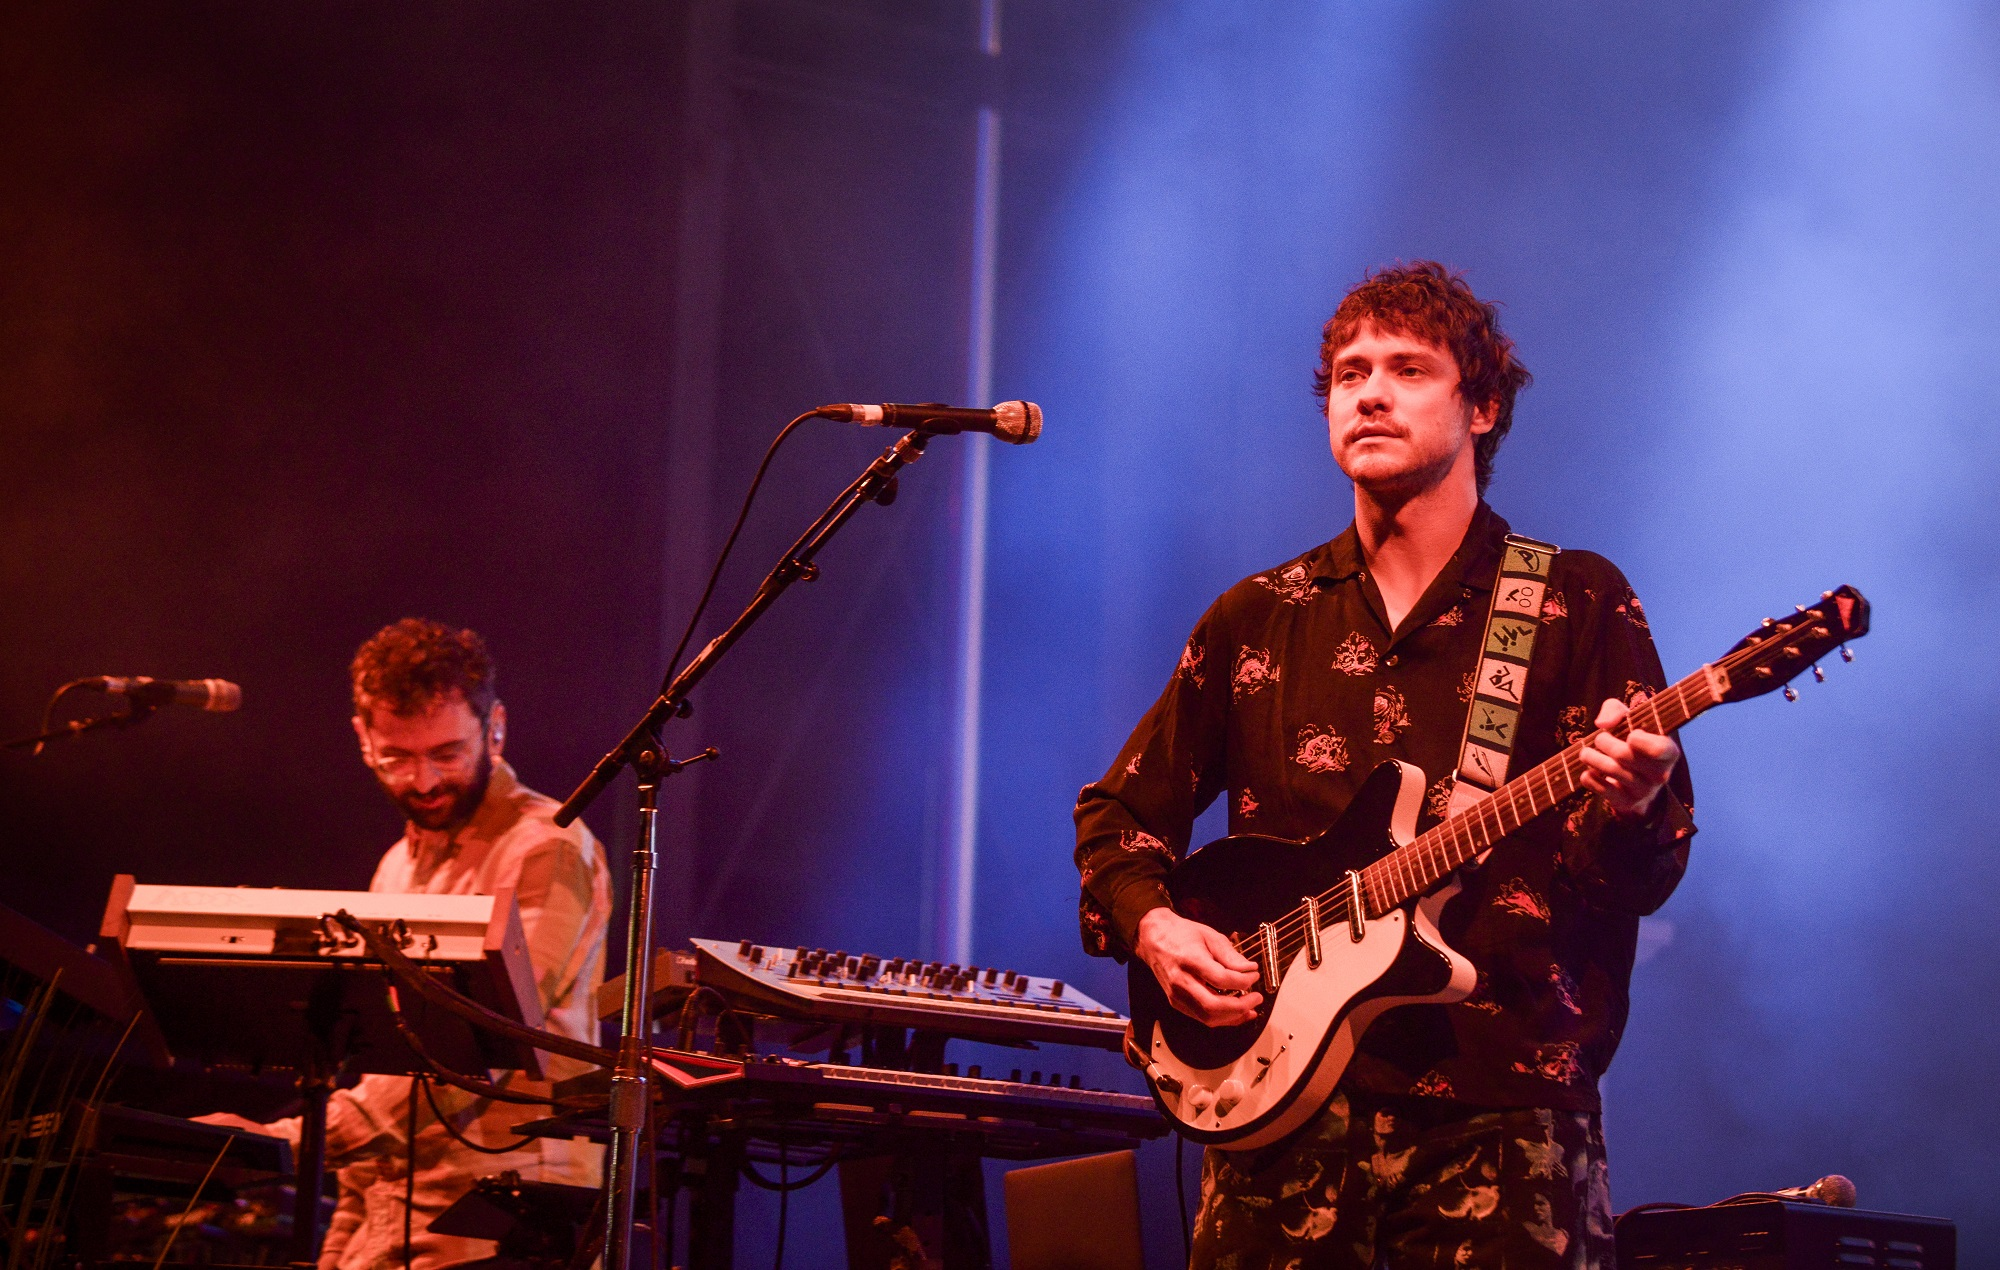 MGMT share another trippy new track 'As You Move Through The World' - EpicNews